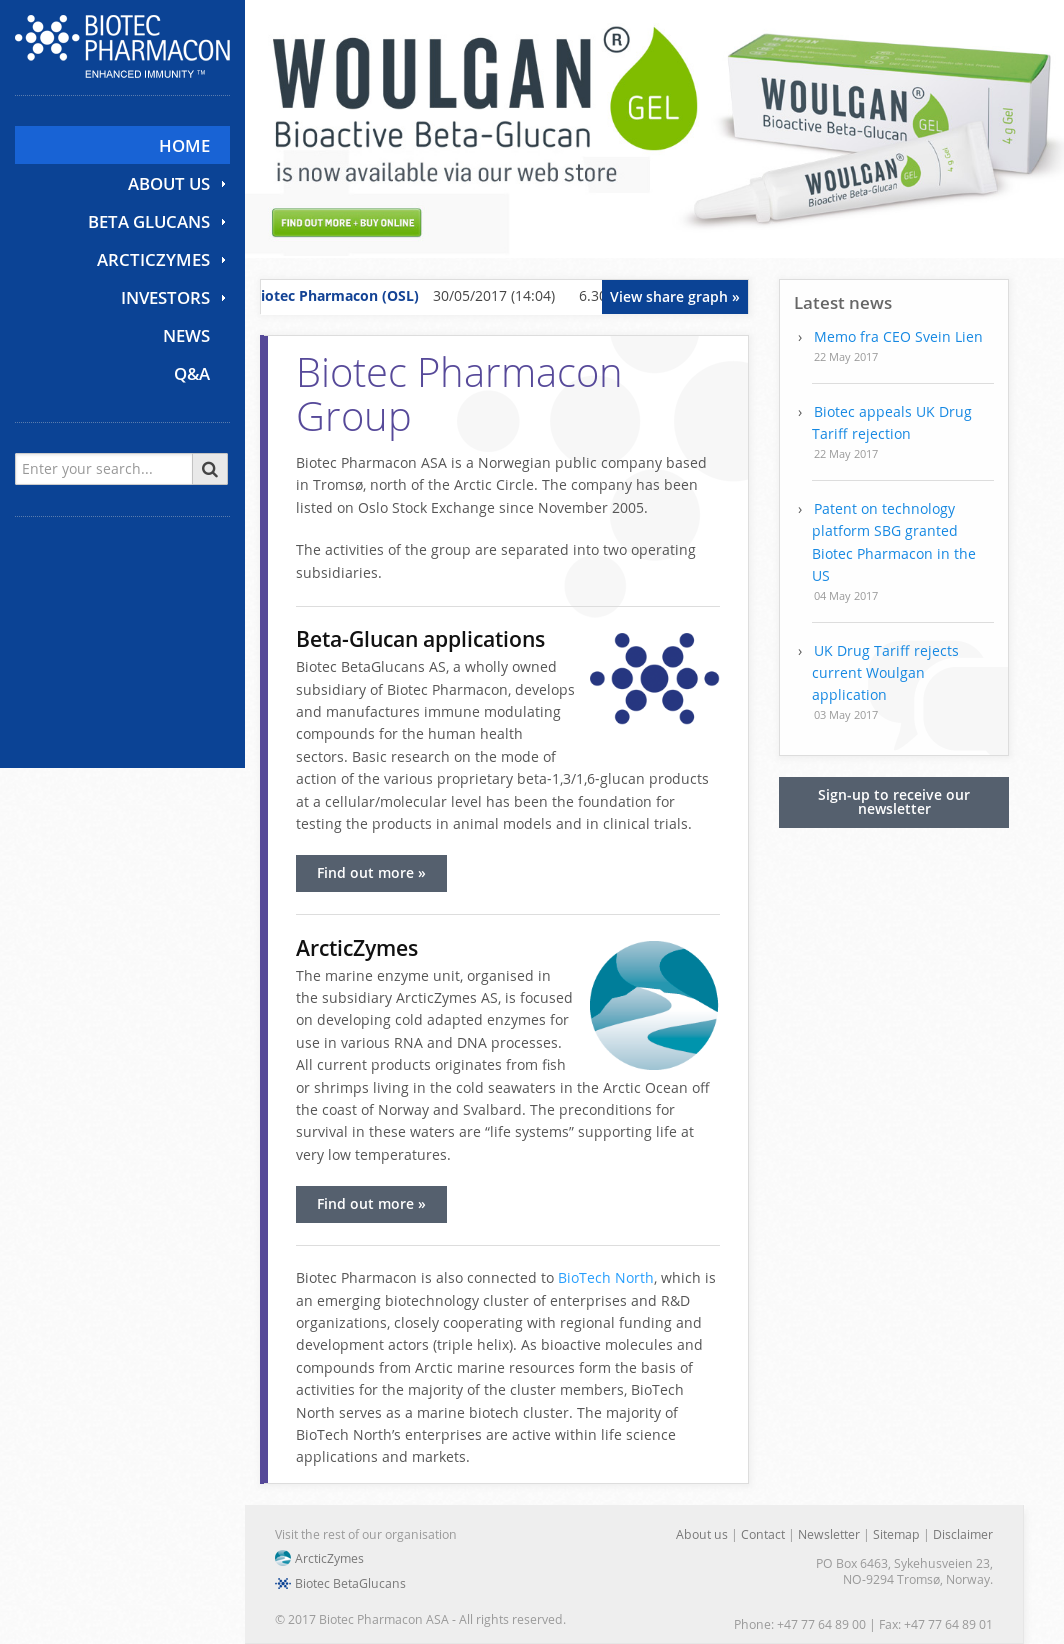 Biotec Pharmacon Competitors, Revenue and Employees - Owler Company